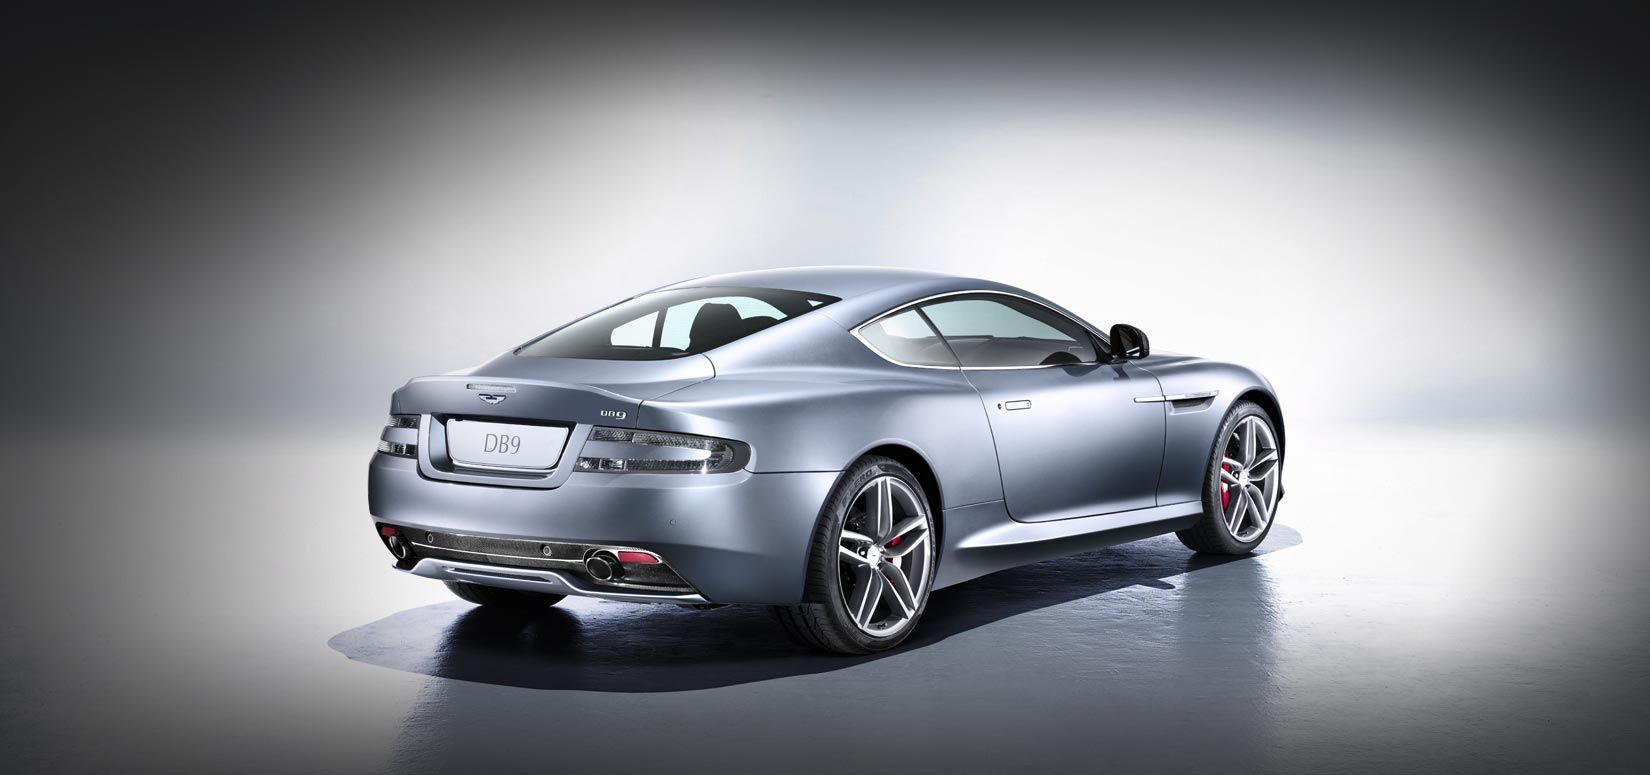 The 2013 Aston Martin DB9 - a compelling Sports GT at the heart of the Aston Martin model range. Discover DB9 - http://www.astonmartin.com/db9 #AstonMartin